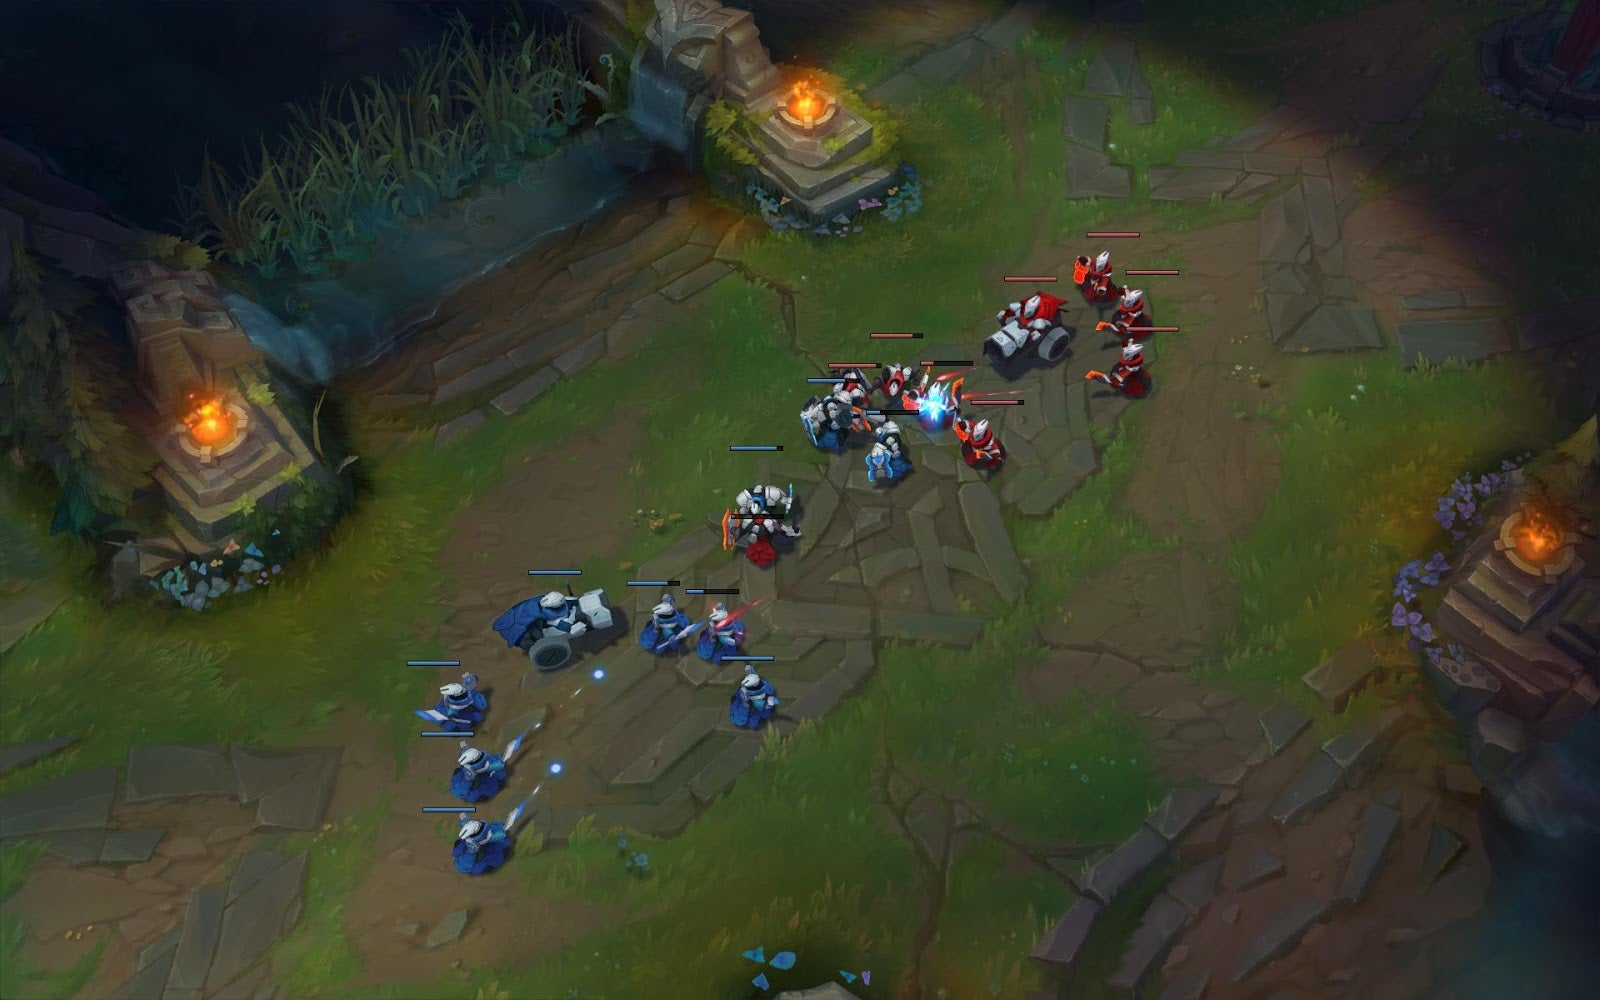 These New Robo Skins For League Of Legends Are Super Cool